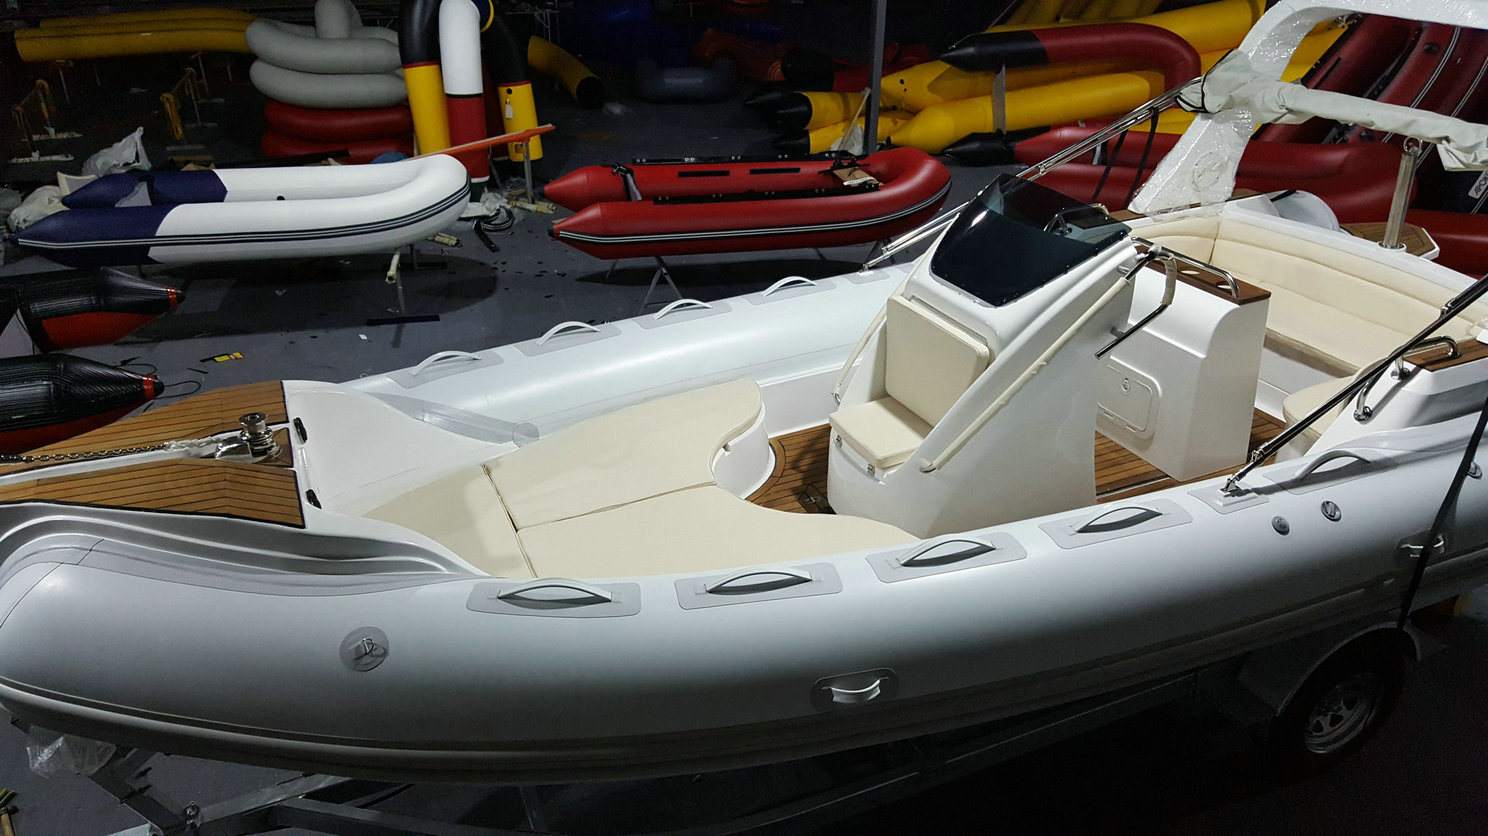 22.3feet 6.8m Inflatable Rib Boat, Rescure Boat, Fishing Boat, Rigid Hull Boat, PVC and Hypalon